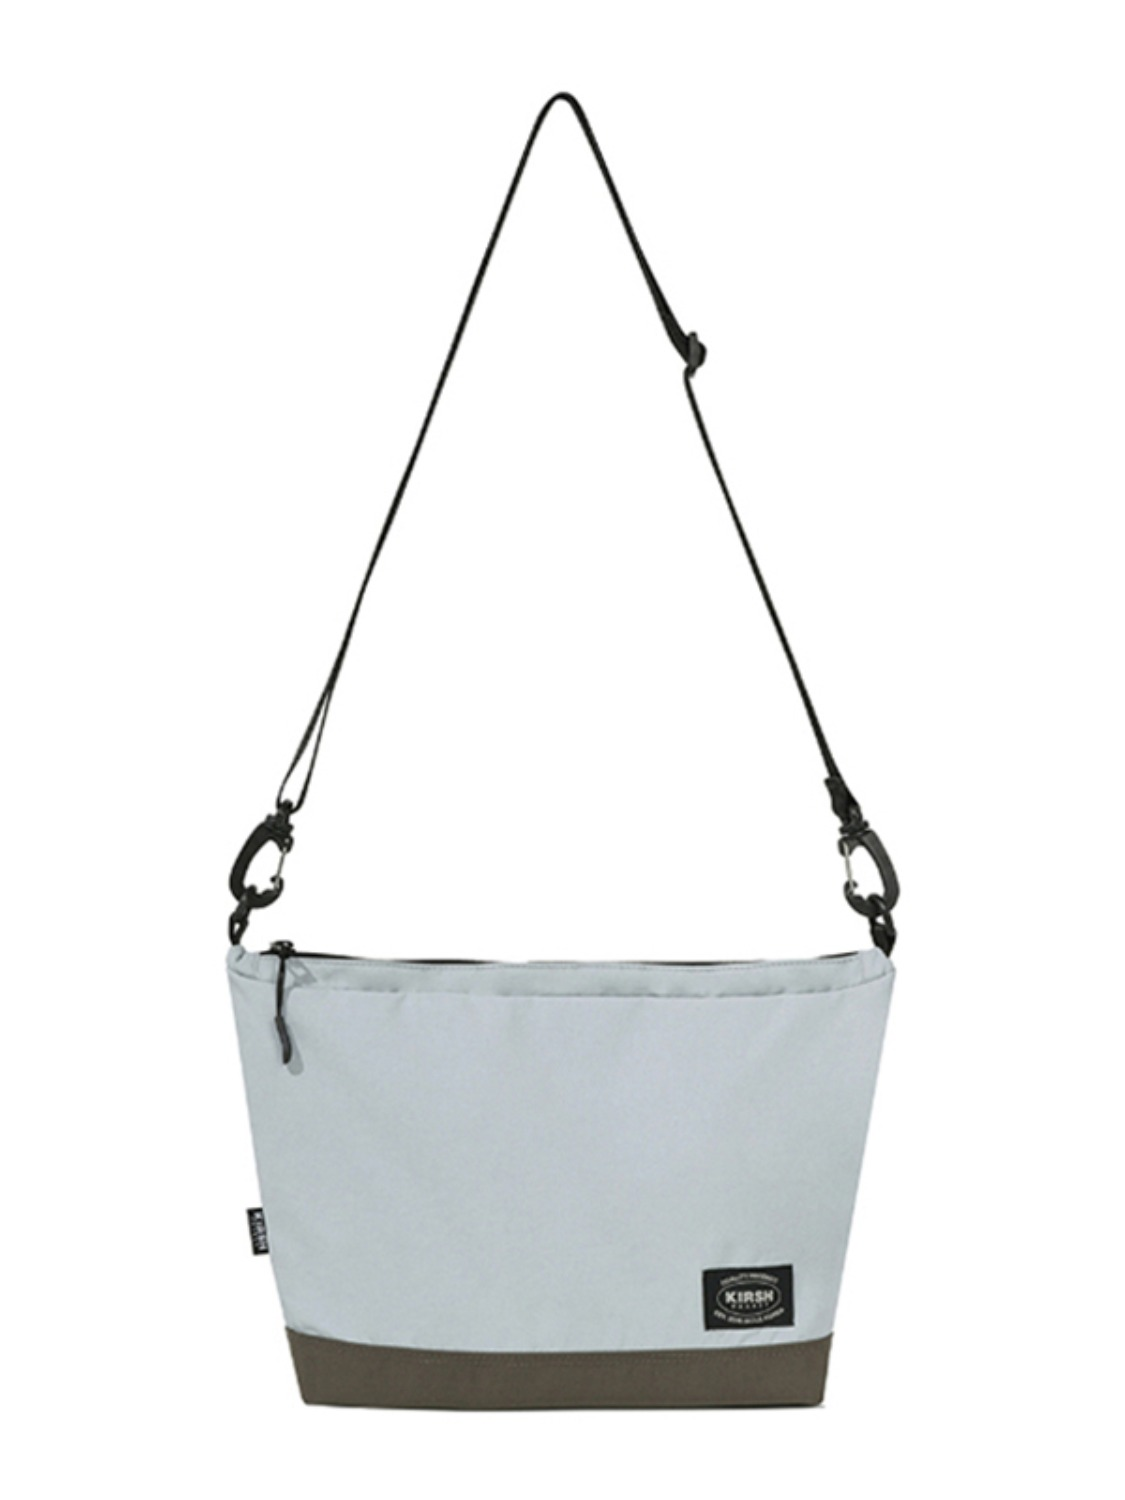 KIRSH POCKET NYLON CROSS BAG KS [LIGHT GREY]